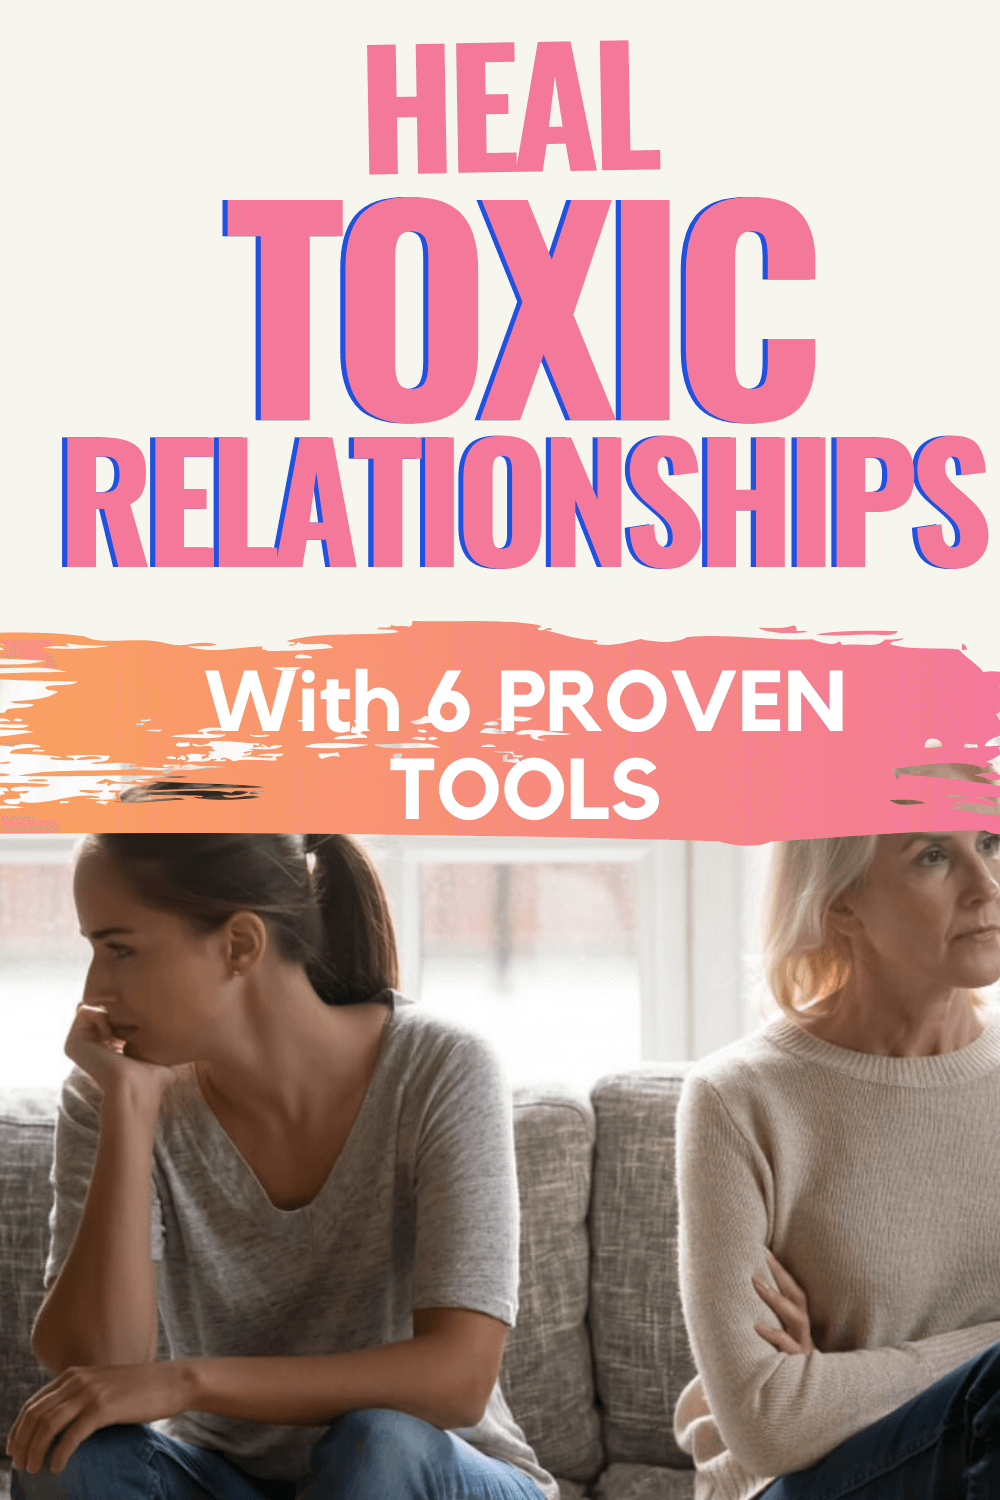 Toxic and difficult relationships can take a toll on us physically and emotionally. Learn how you can heal, fix and break free from your relationship issues.  #marriage #healtoxicrelationships #relationships #divorce  #relationshiptips #lightworker #narcissist #newagespirituality